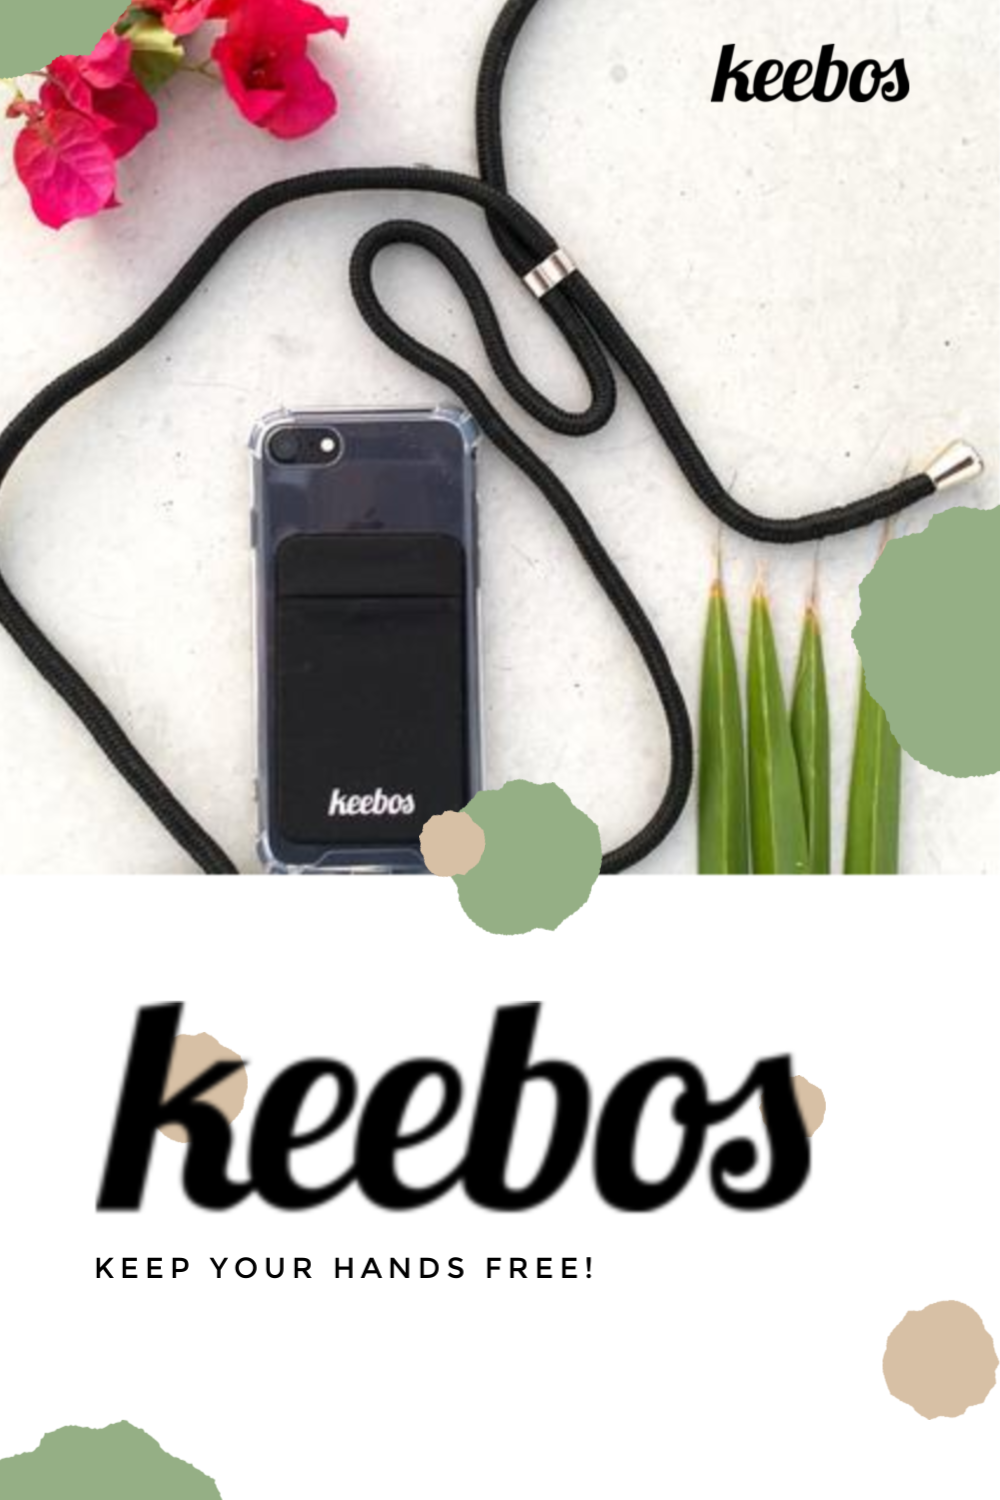 Never drop or lose your phone again - Keep your hands free #Keebos